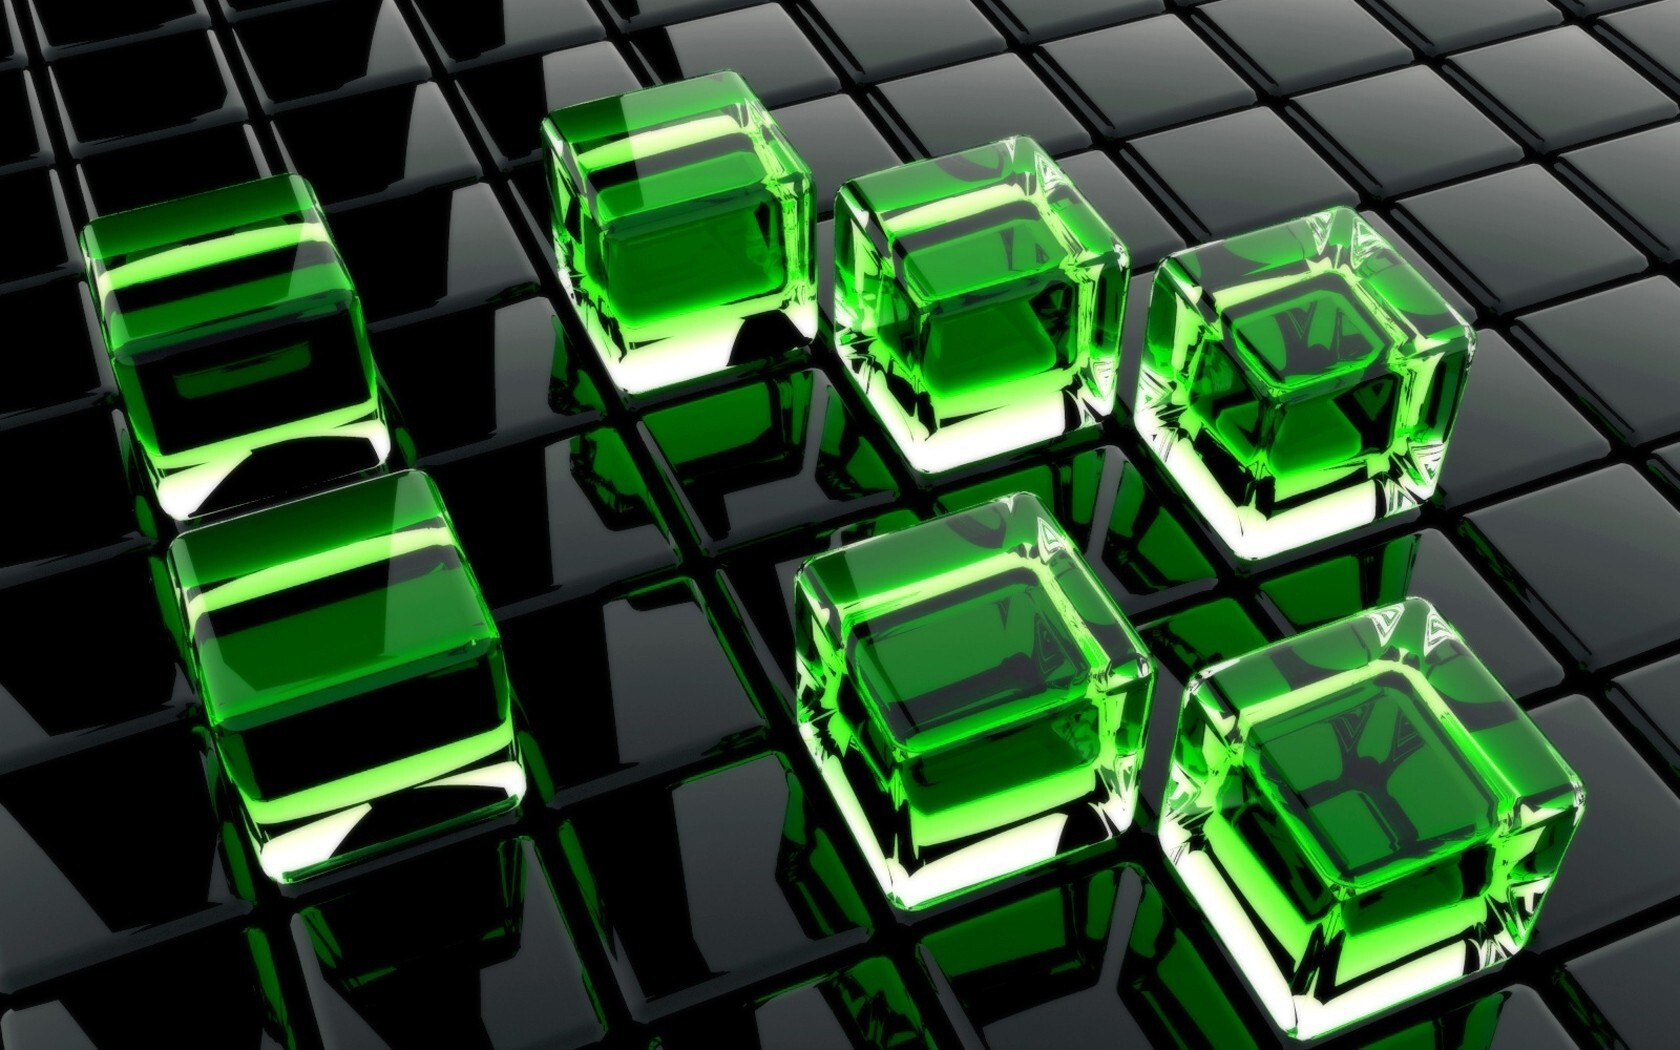 3d green cubes hd wallpaper background hd wallpapers for 3de wallpaper